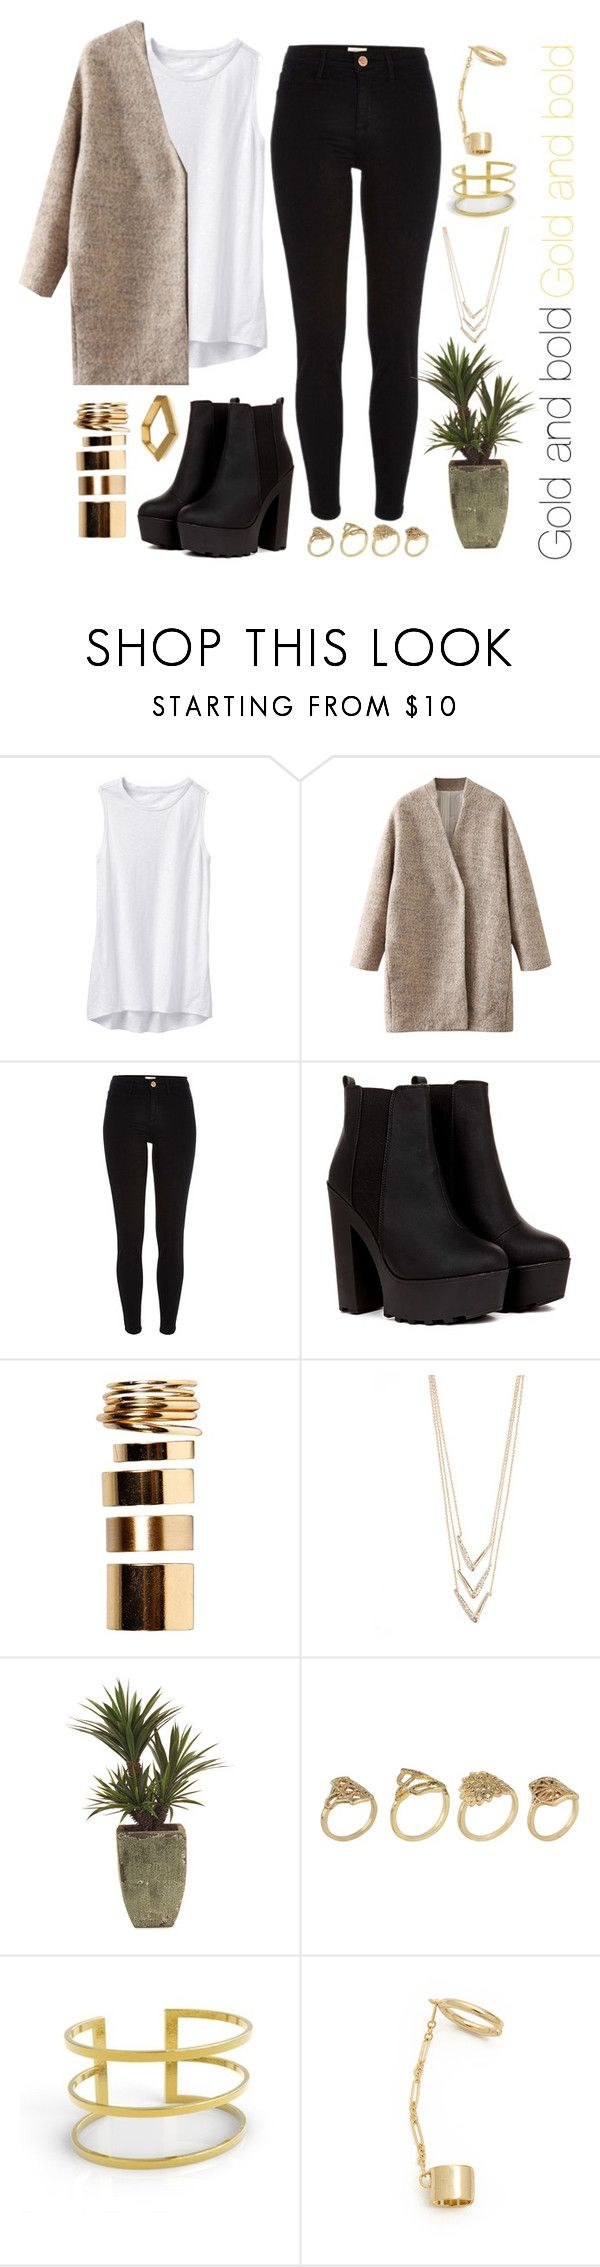 """Gold and Bold"" by jess ❤ liked on Polyvore featuring Athleta, River Island, Boohoo, Alexis Bittar, John-Richard, ALDO, Artelier, DANNIJO and ELYONA"